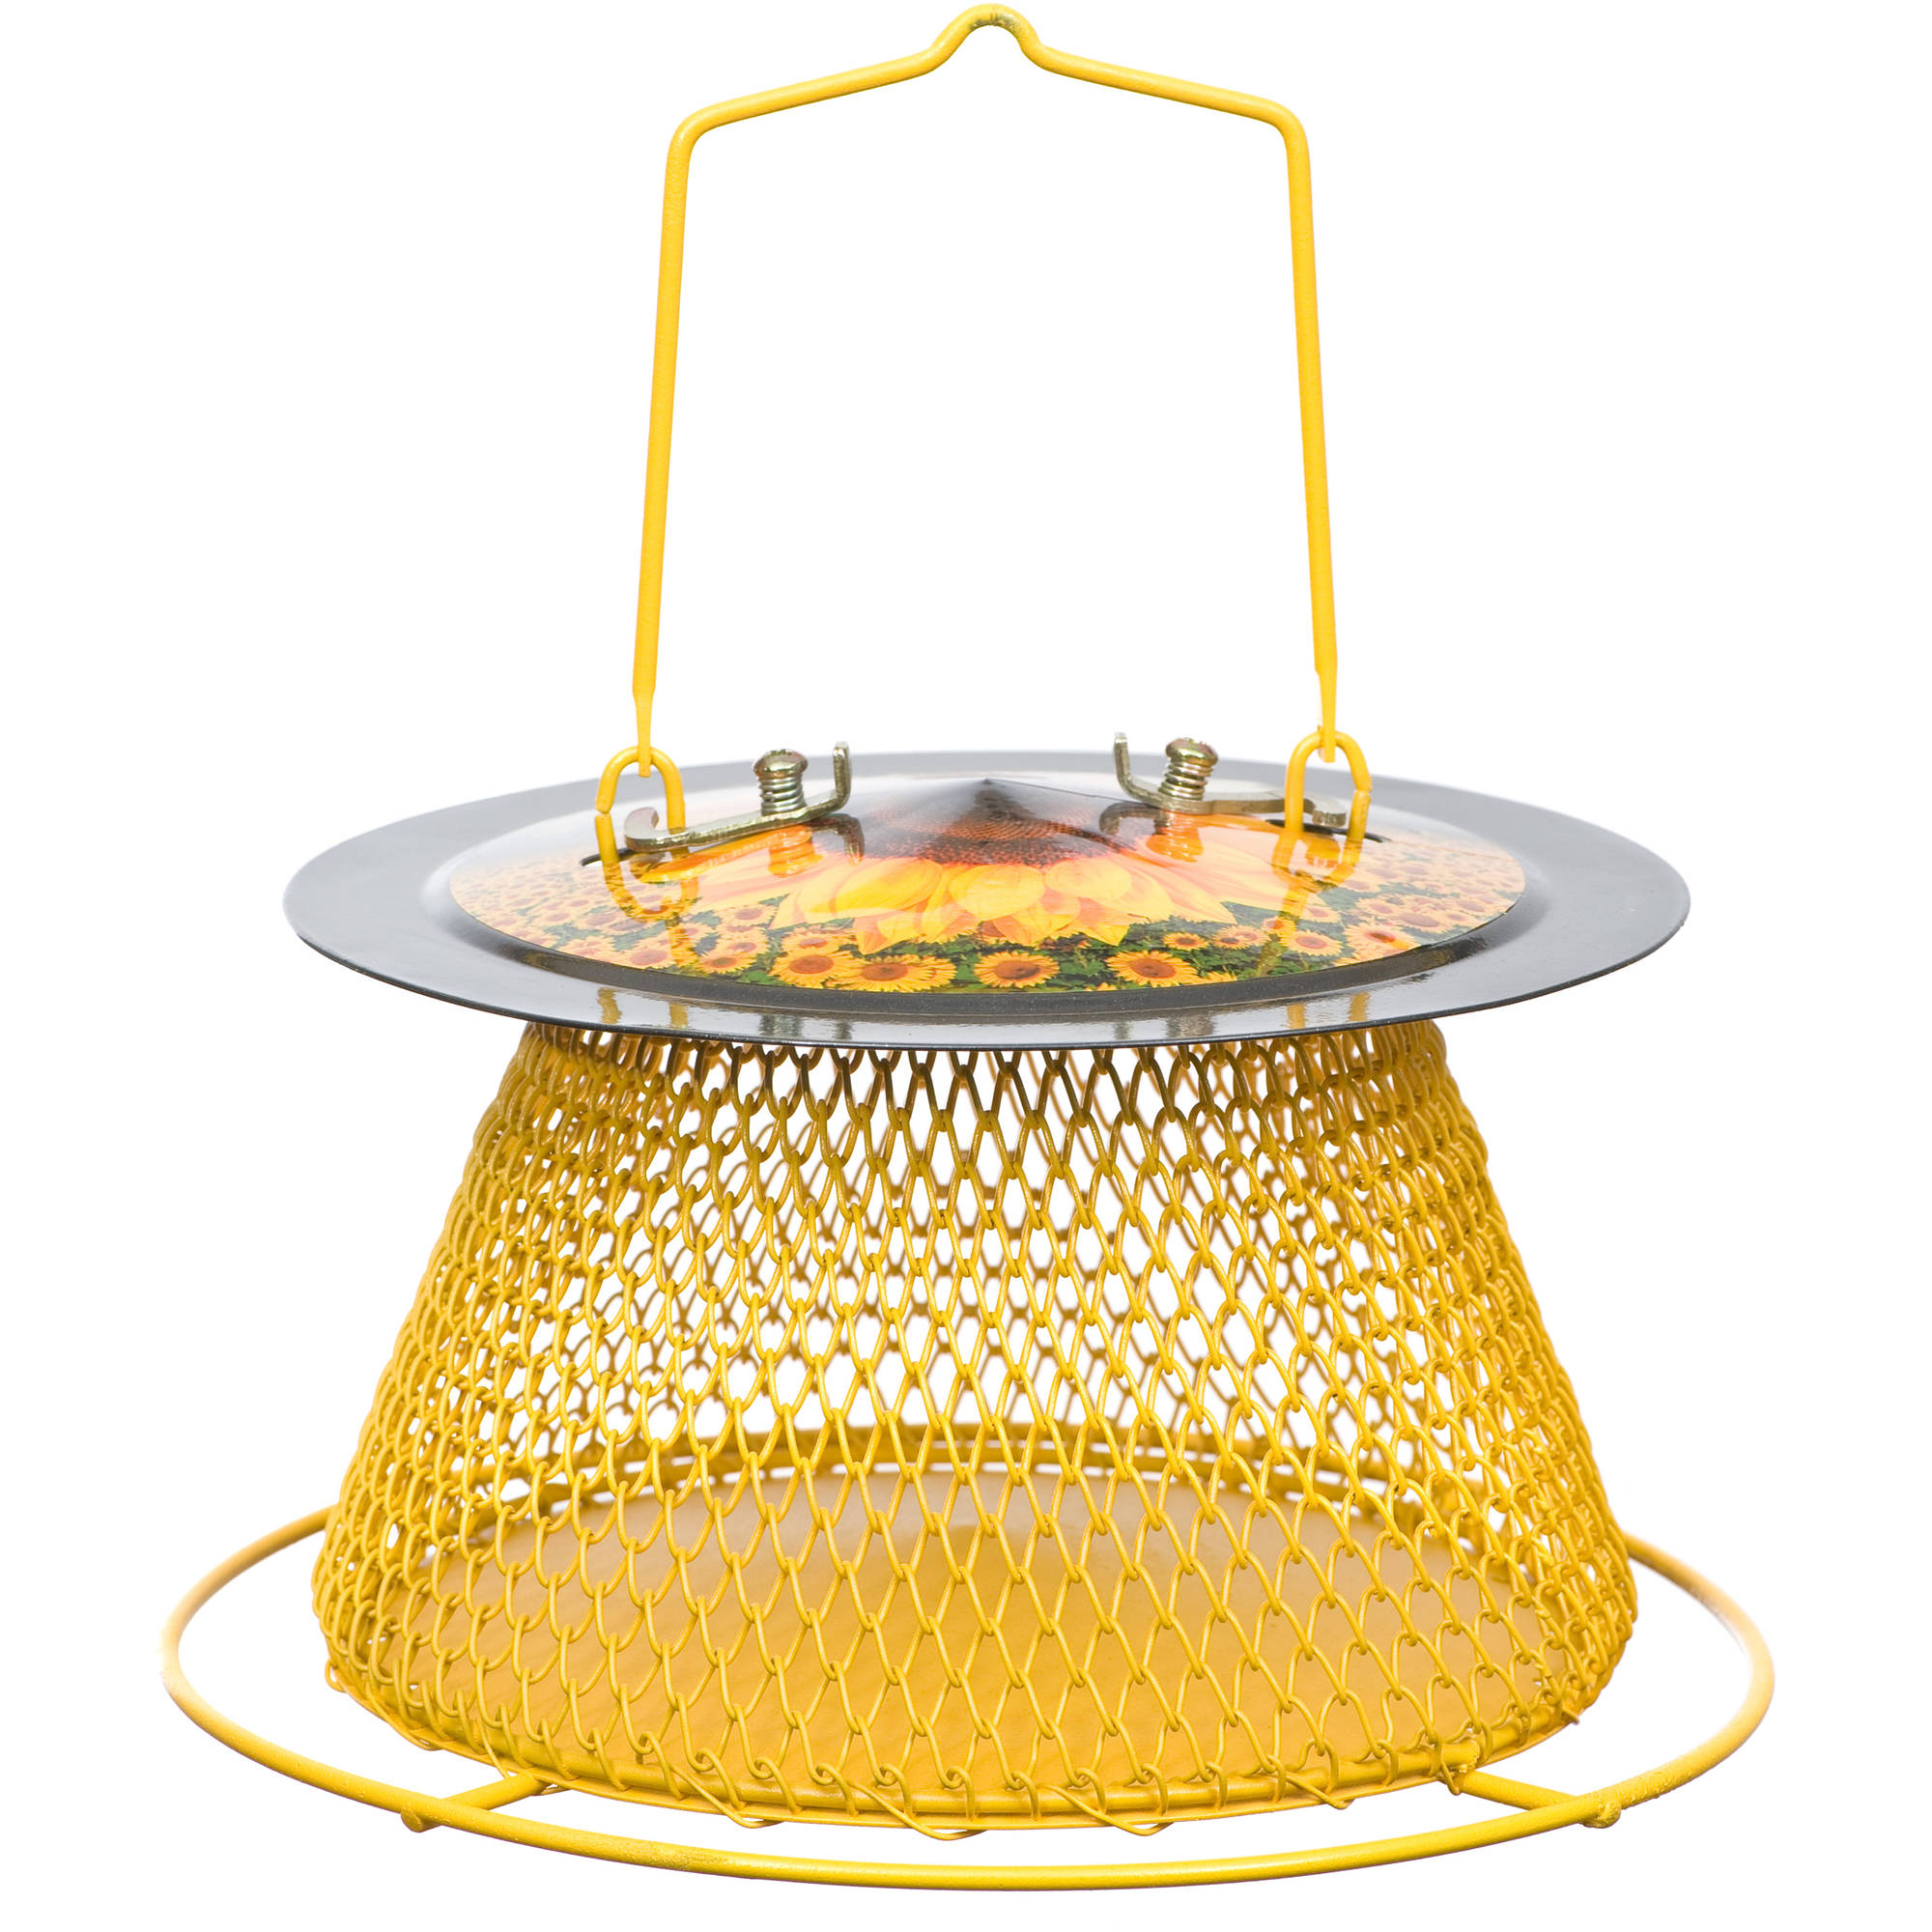 No No Designer Single Wild Birdfeeder by Woodstream Corp